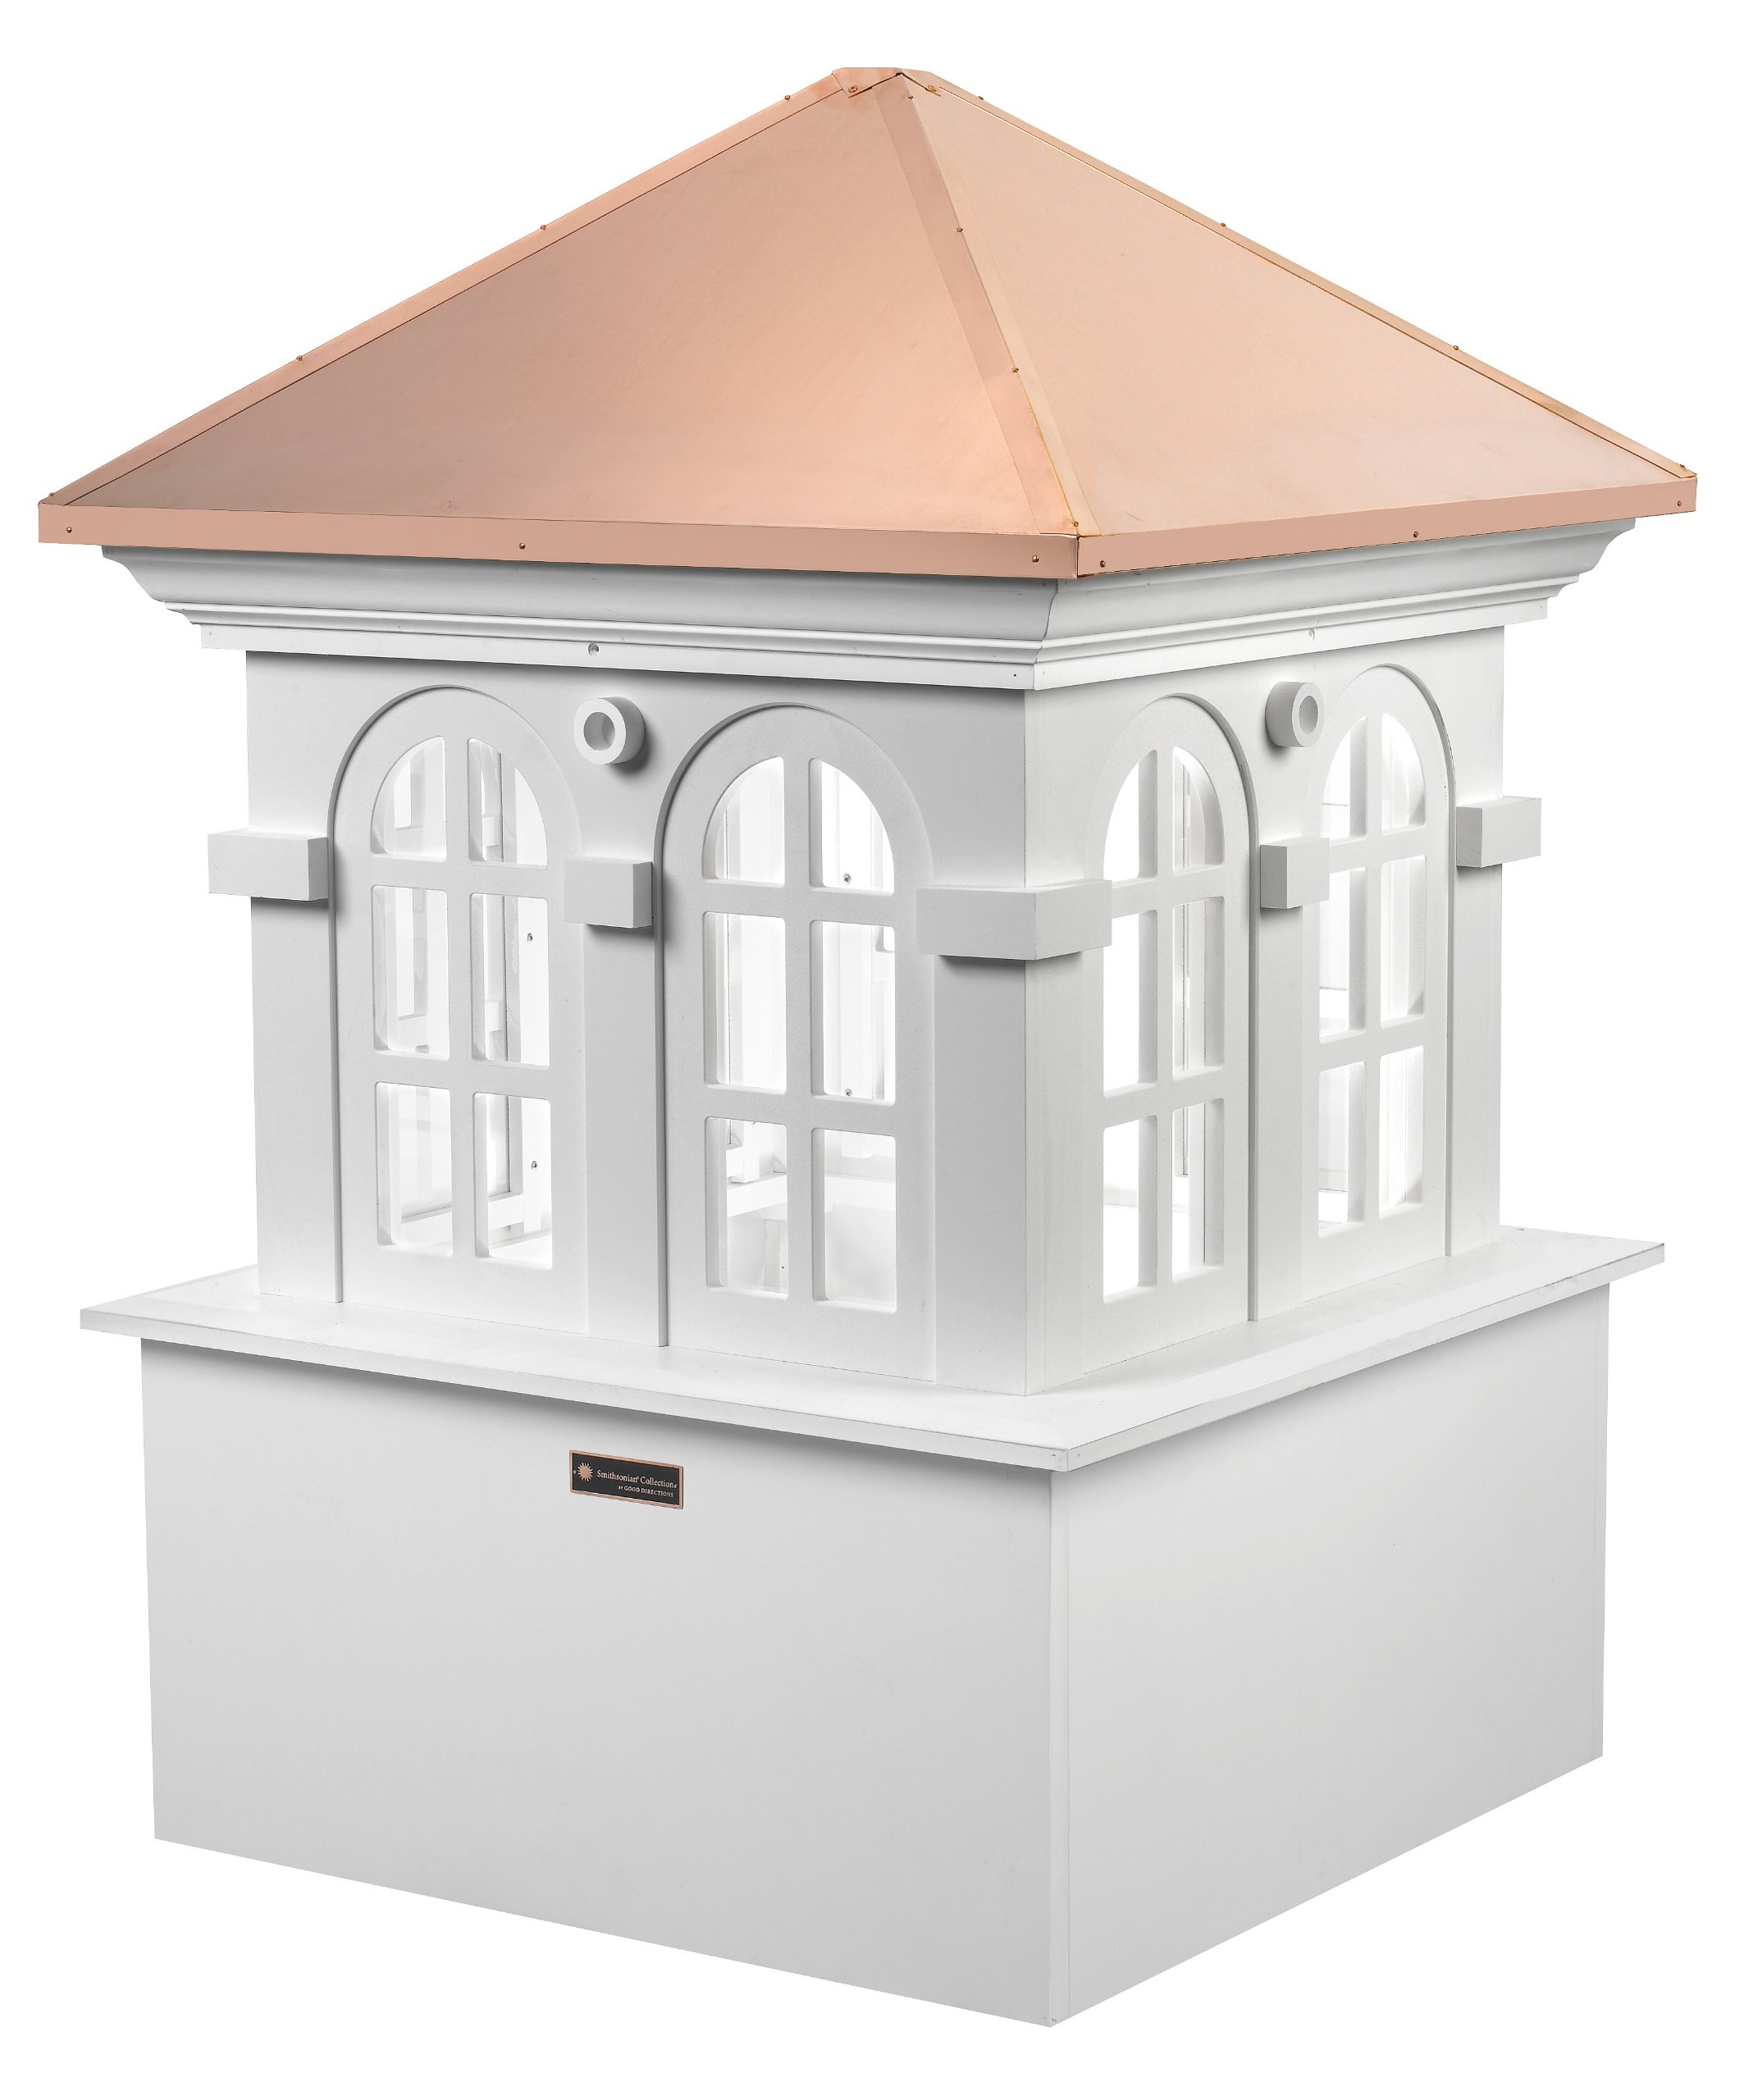 Good Directions Smithsonian Chesapeake Vinyl Cupola with Copper Roof, 36'' x 51''